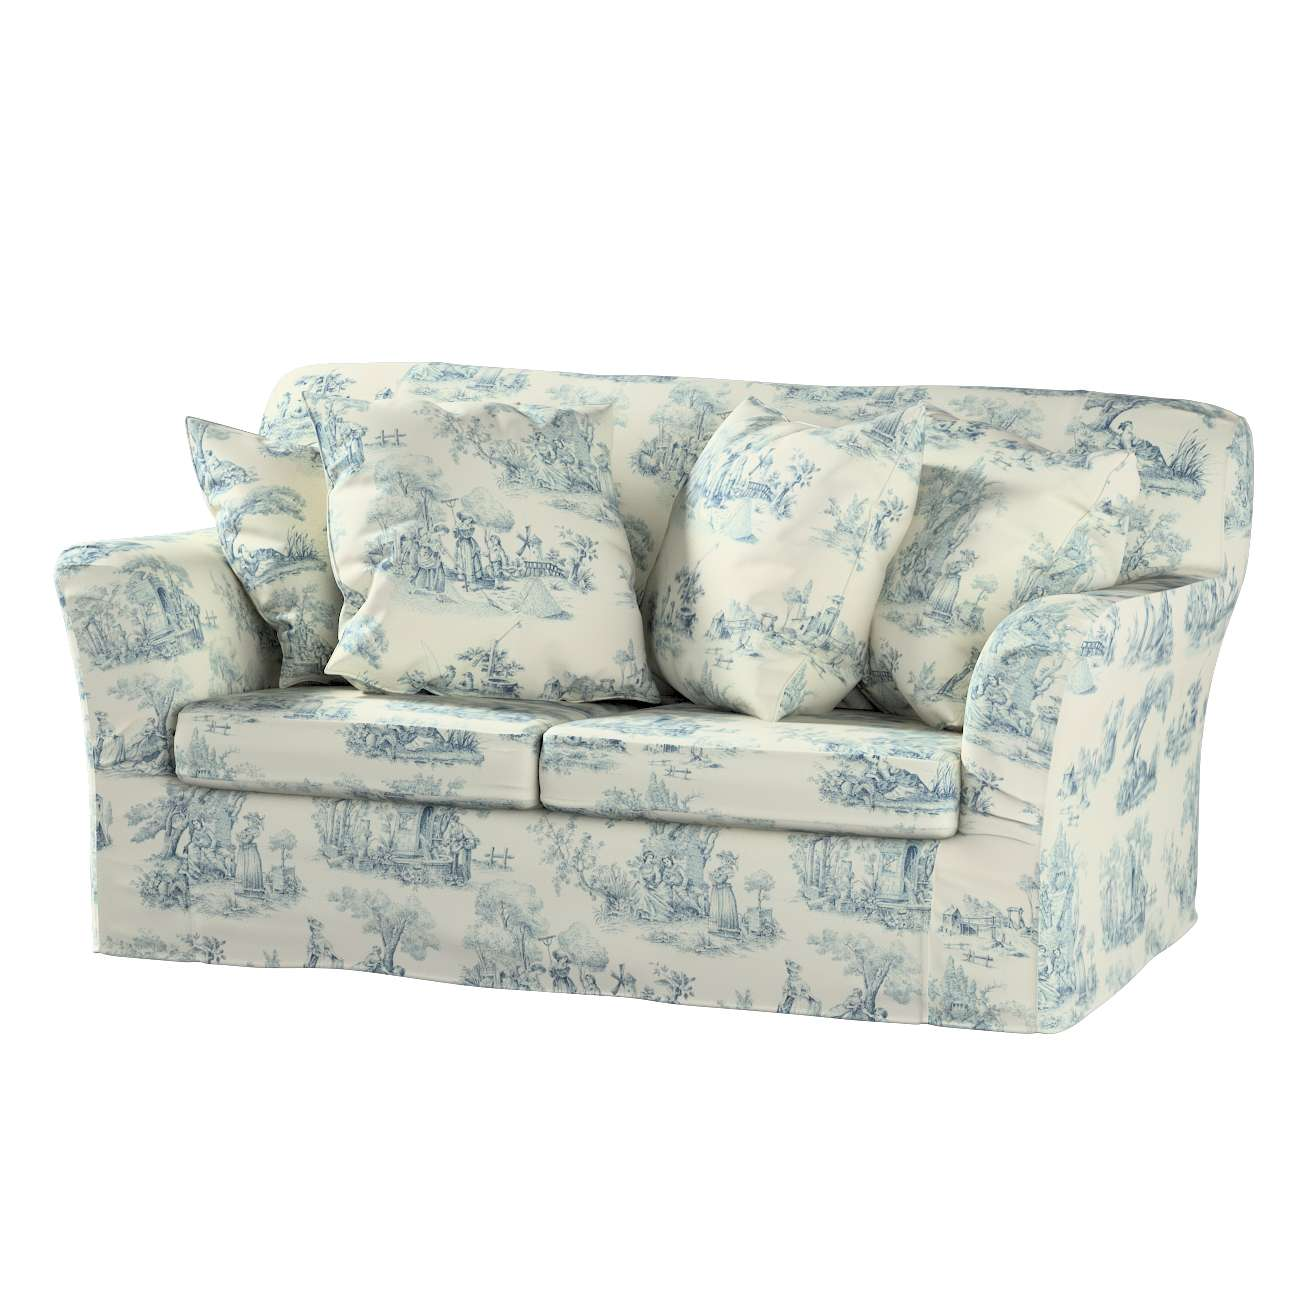 Tomelilla 2-seater sofa cover in collection Avinon, fabric: 132-66